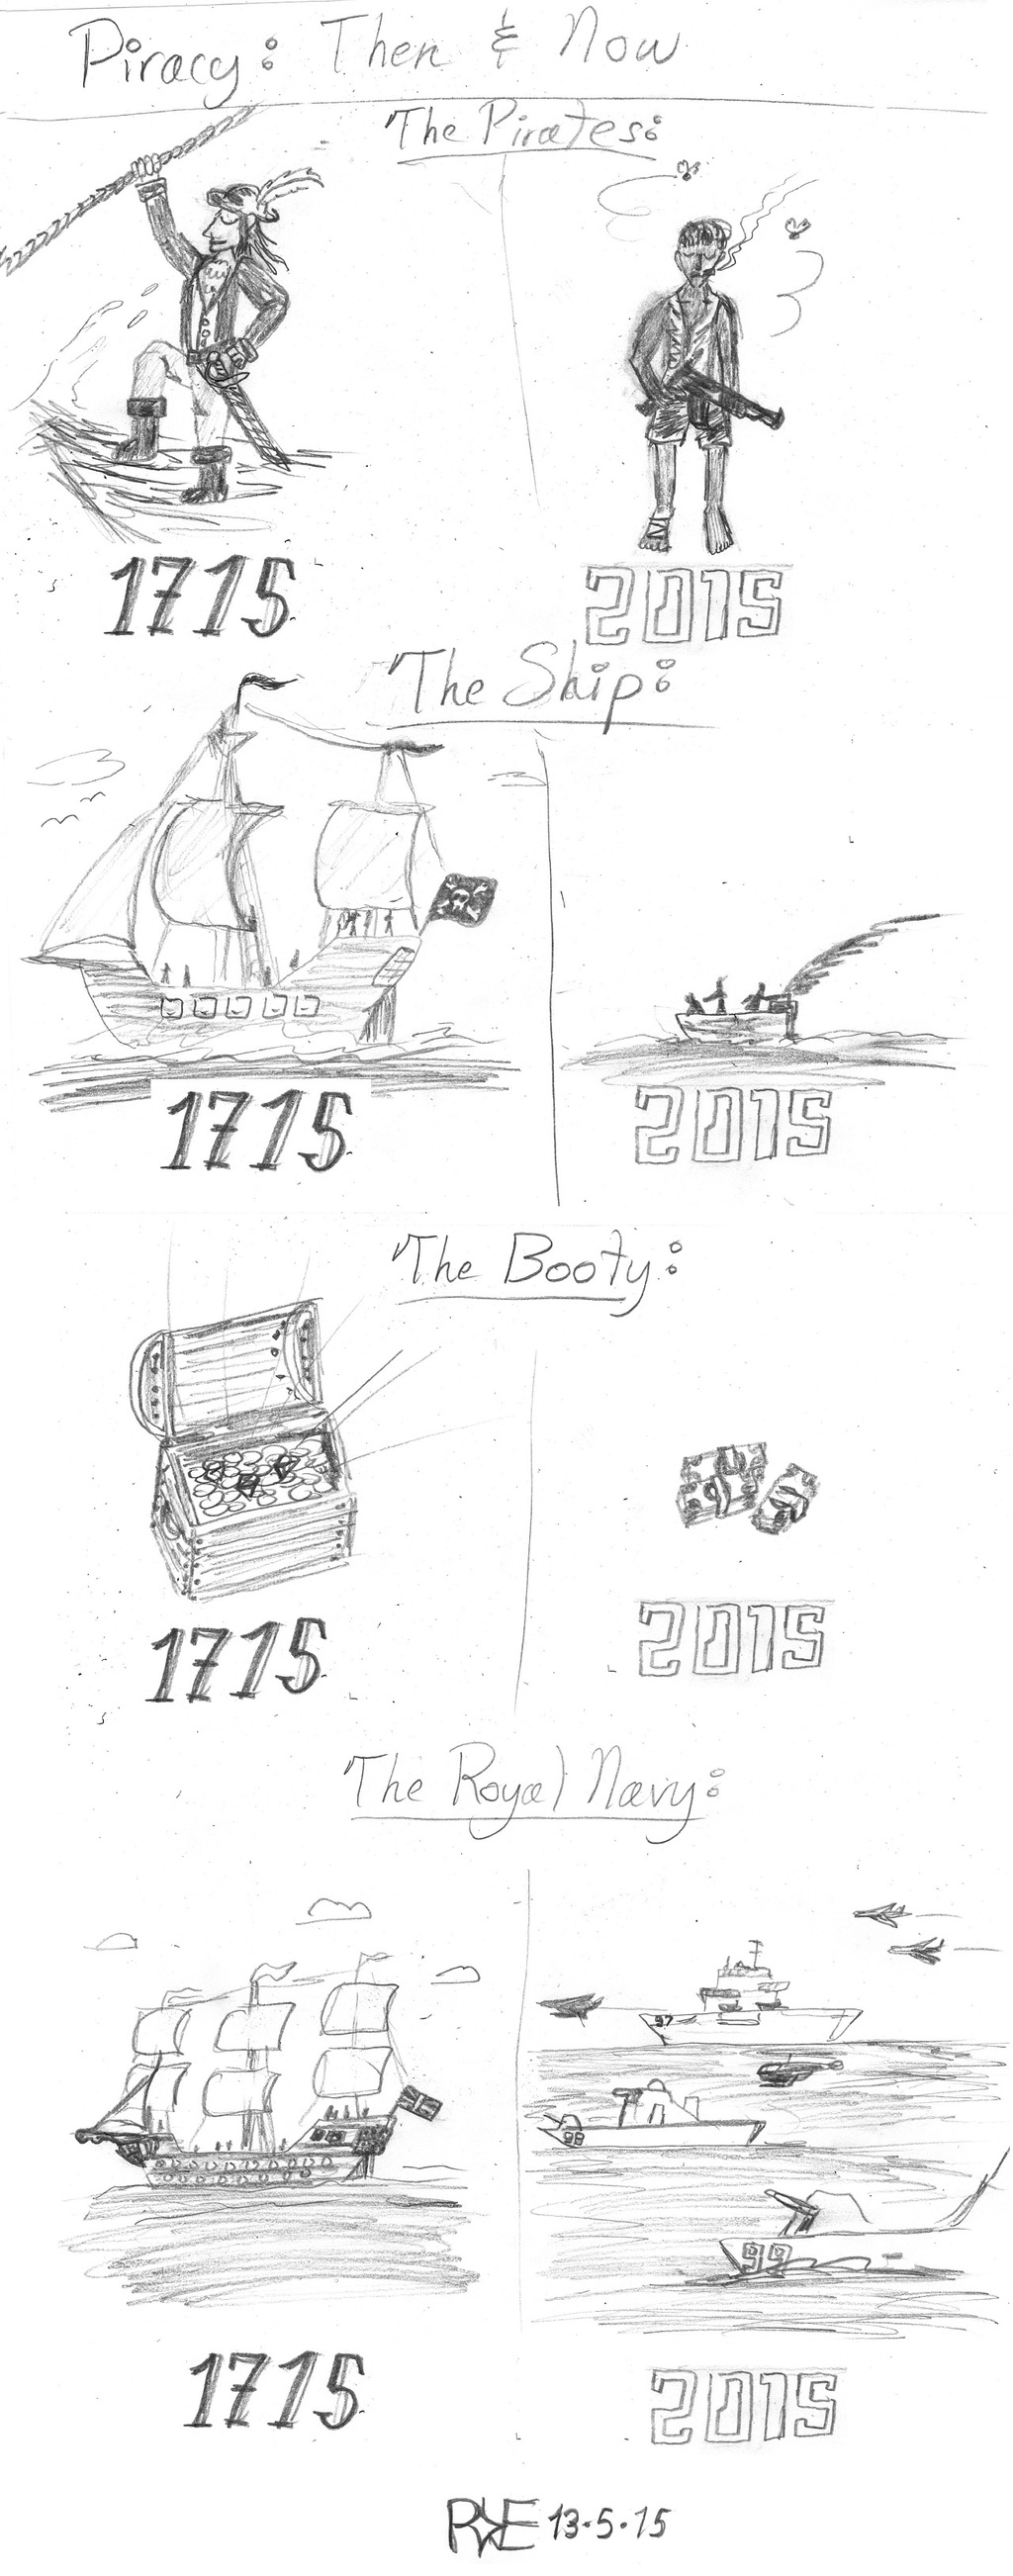 Piracy: Then & Now